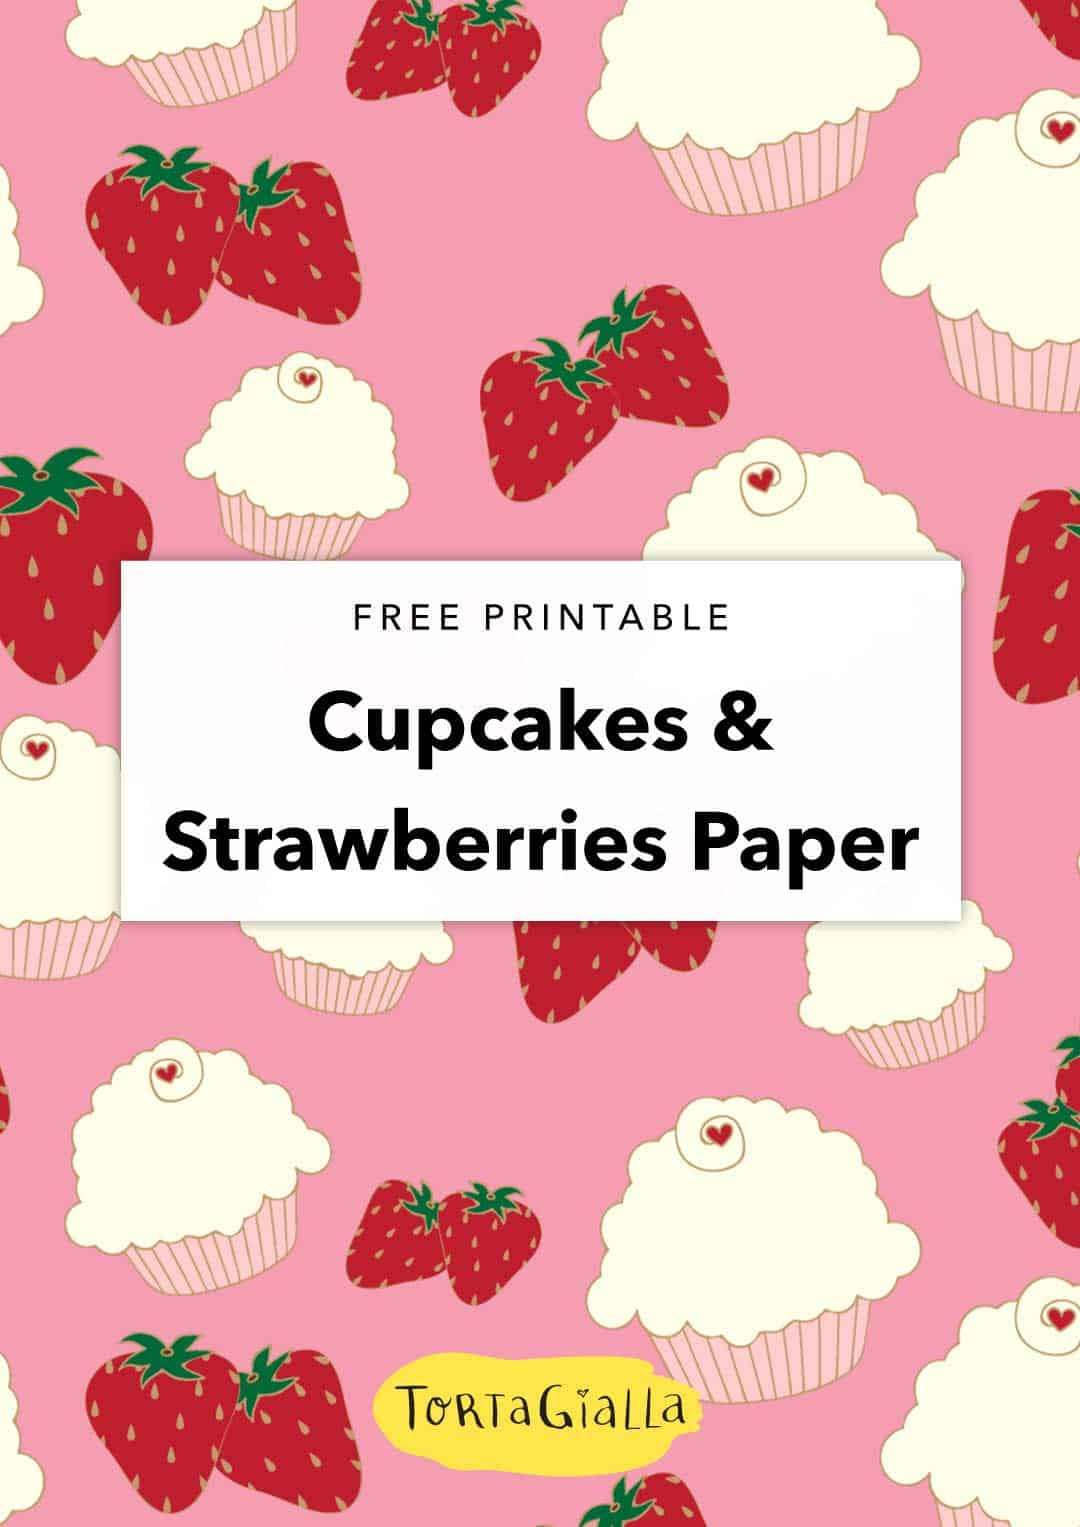 Looking for sweet and pink scrapbooking paper? Download this free  pink digital paper featuring cute strawberries and cupcakes.